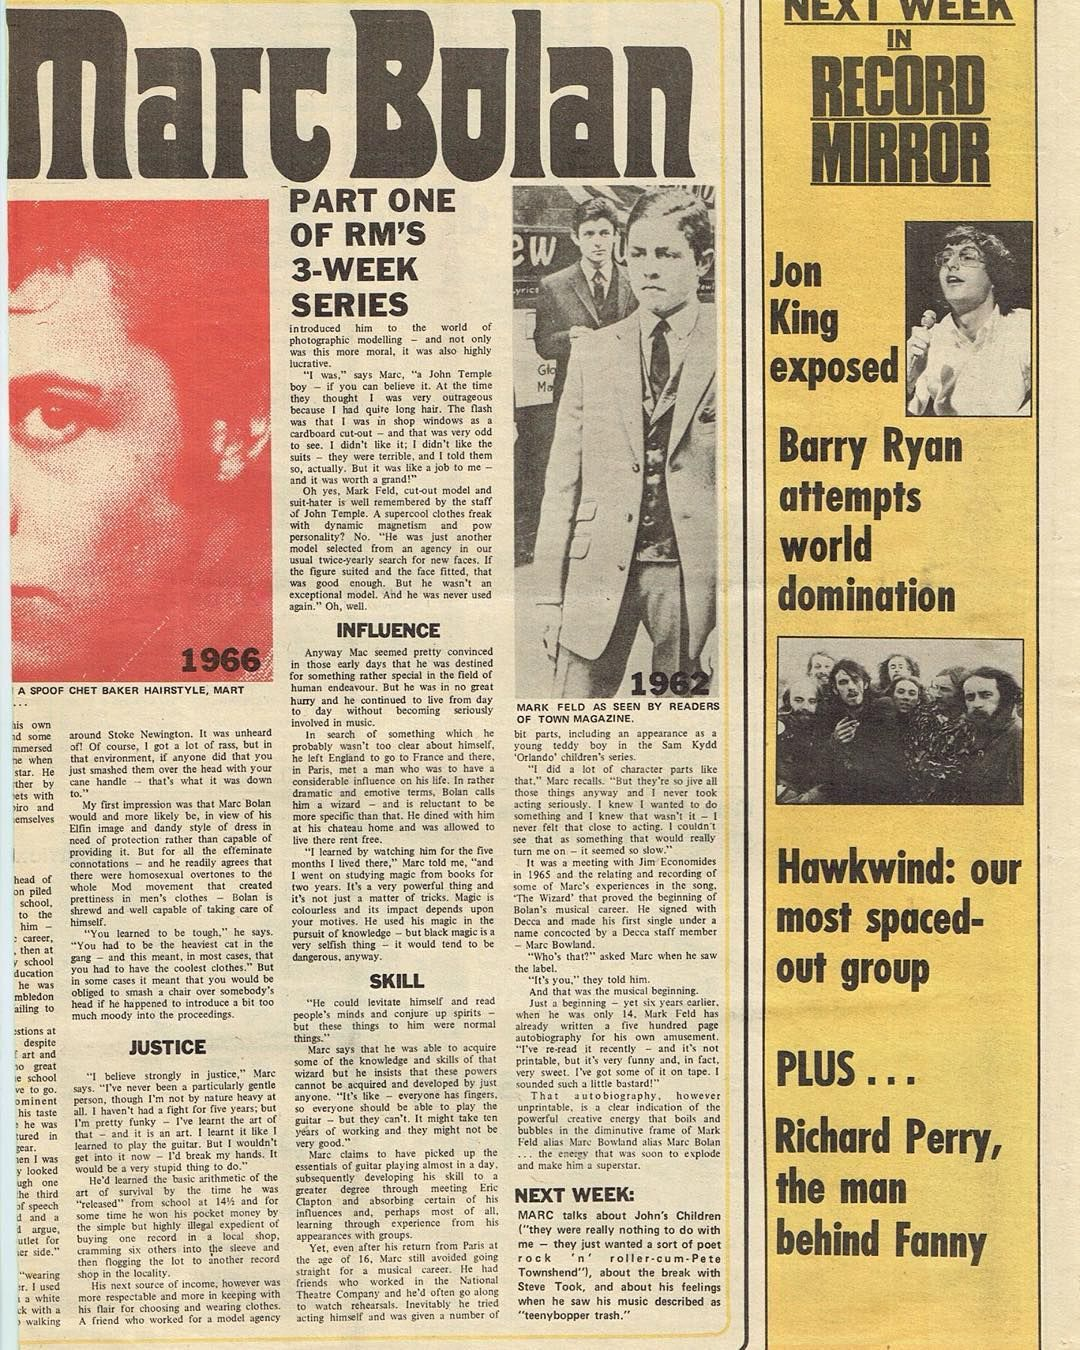 Getiton January 8th 1972 Record Mirror Part Two